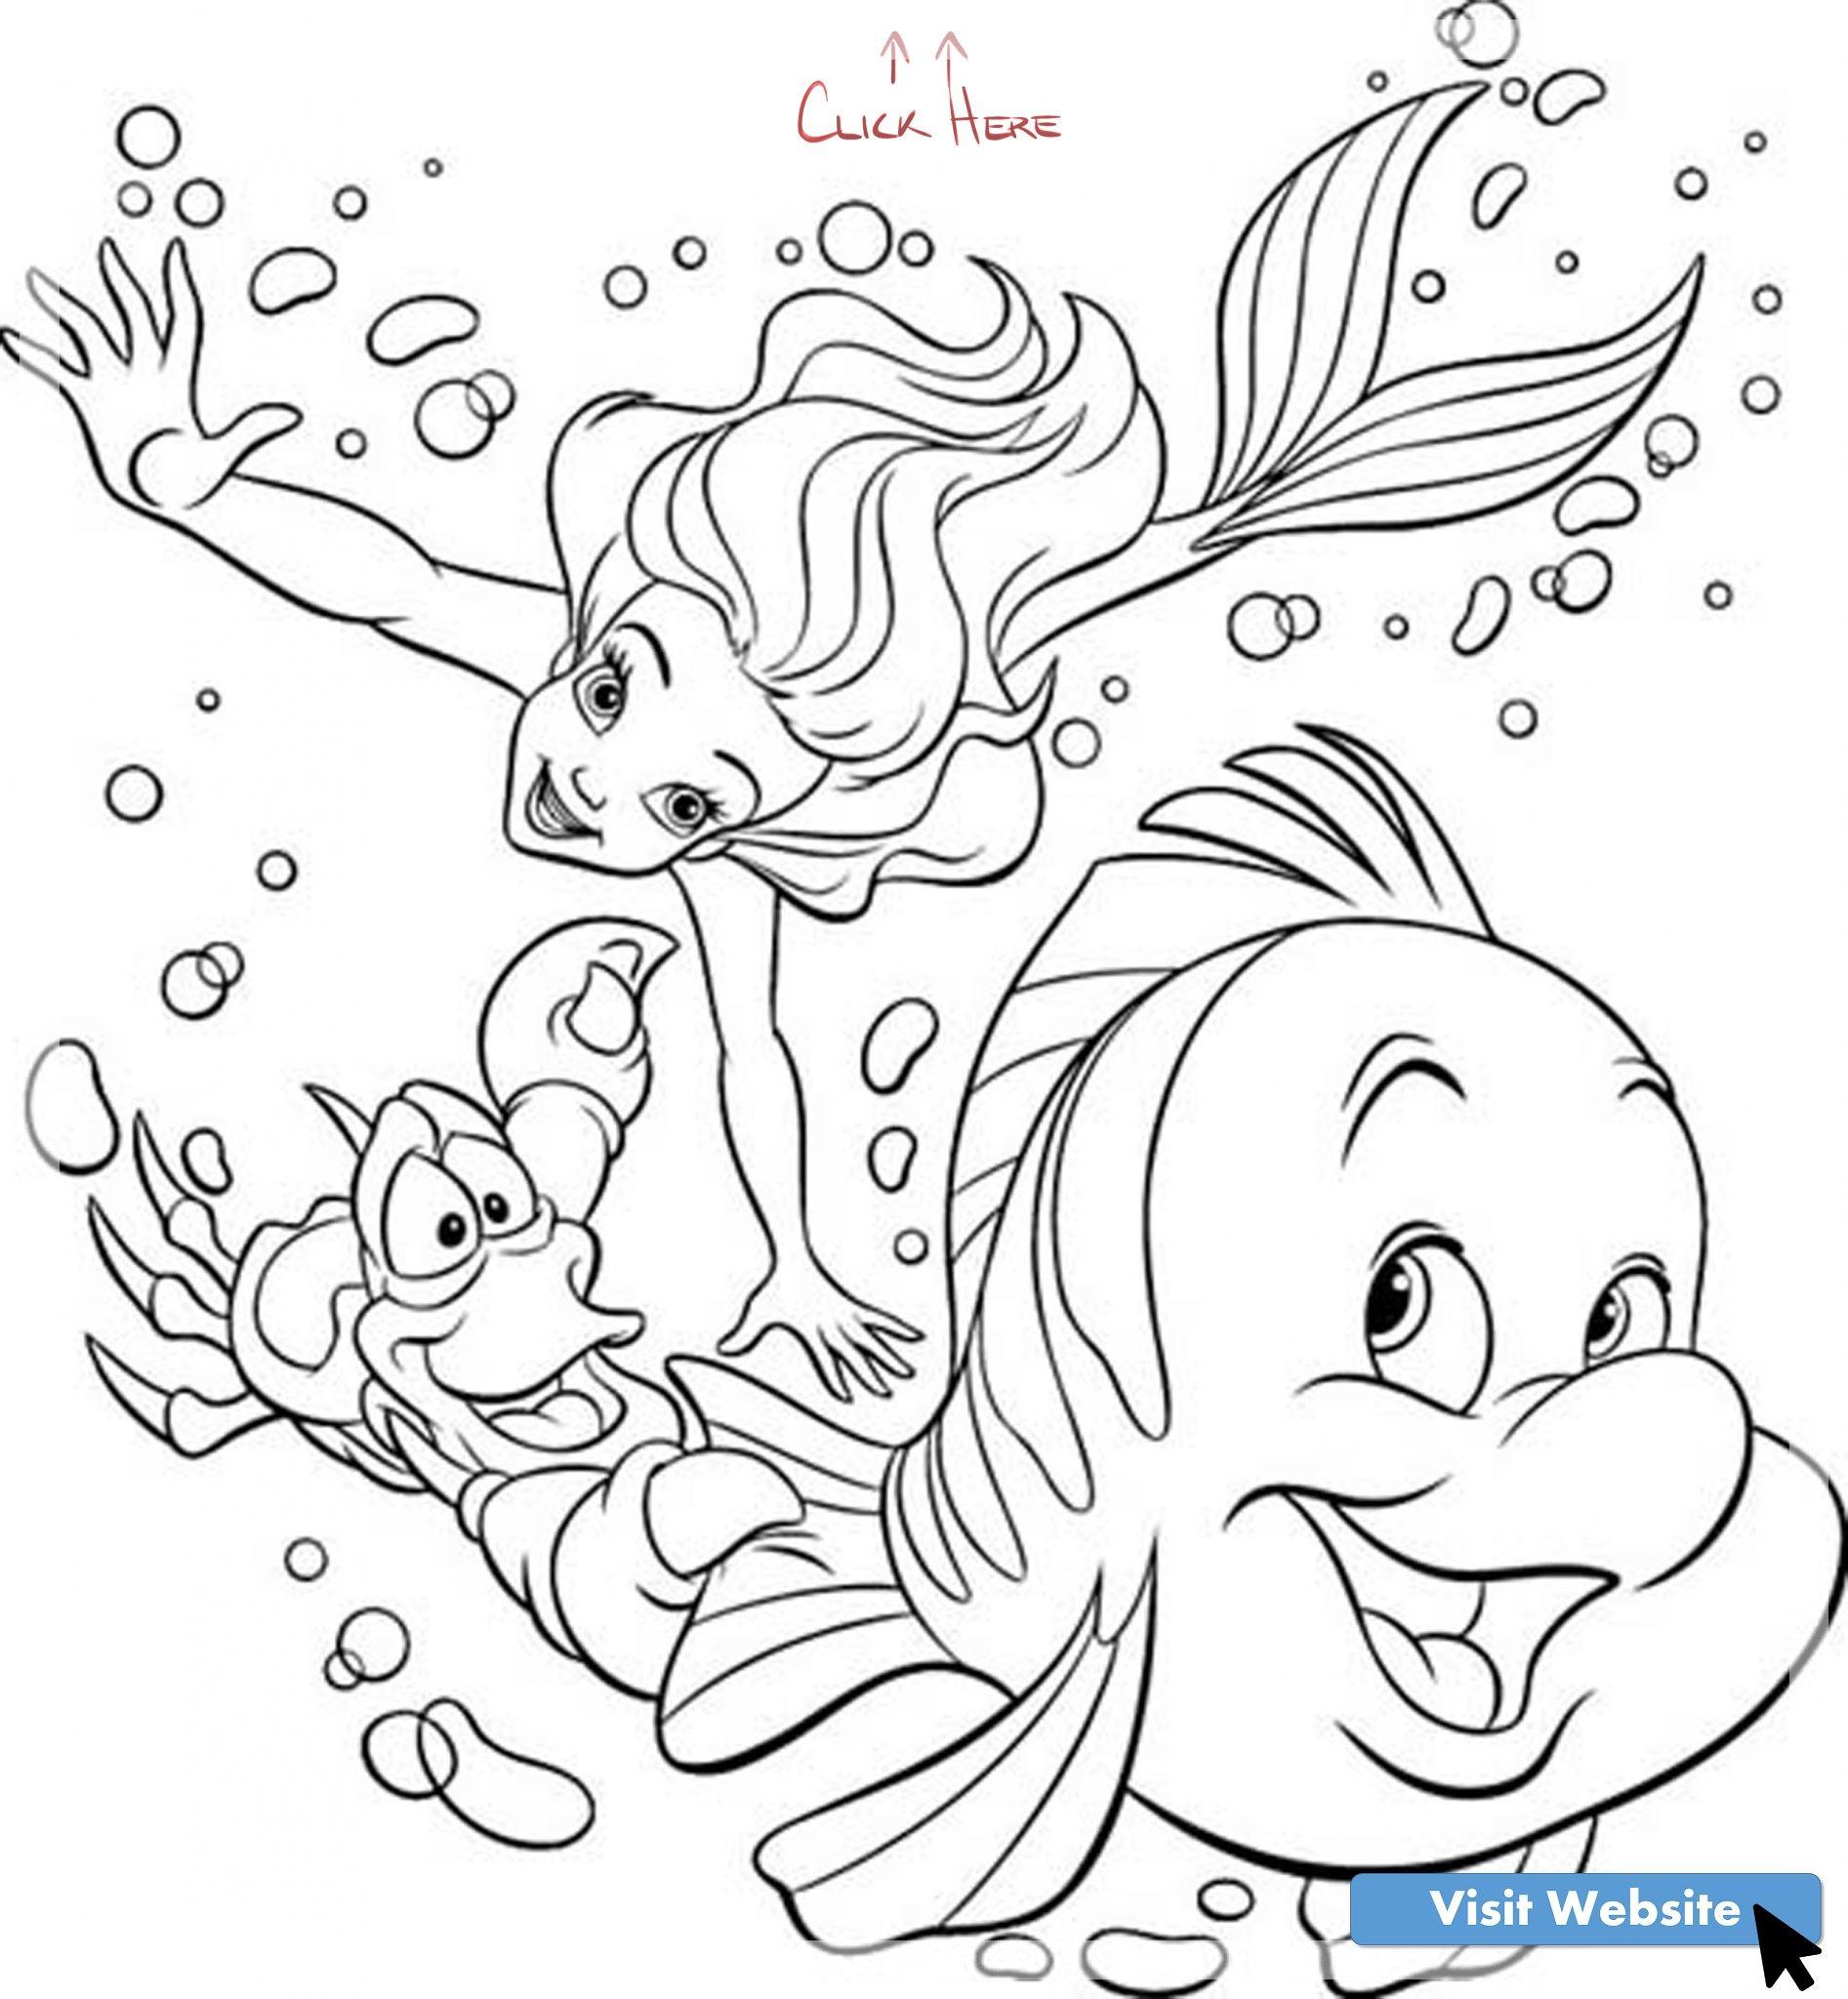 42 Rich Free Coloring Pages For Kids Preschool Learning Free Disney Coloring Pages Disney Coloring Pages Zoo Coloring Pages